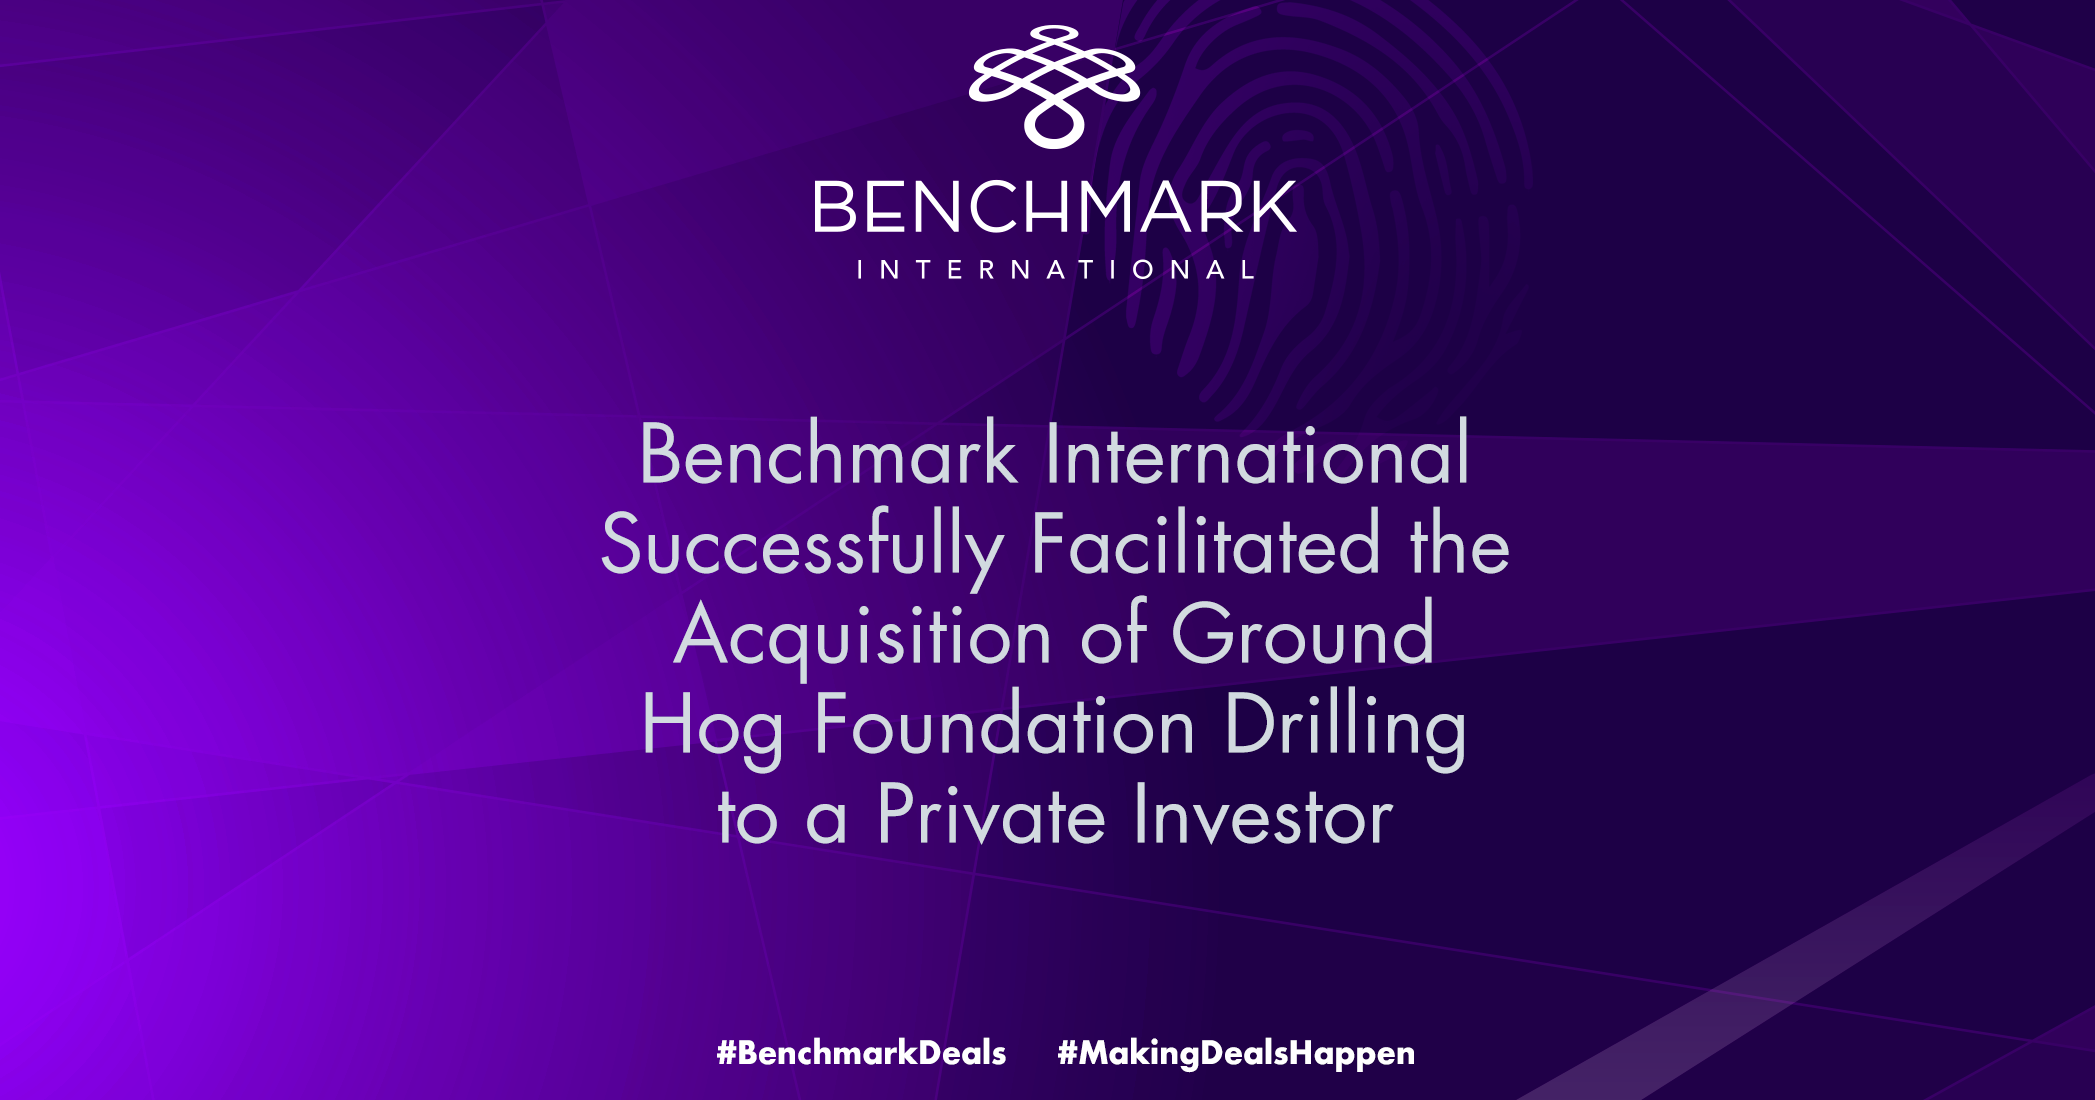 Benchmark International Successfully Facilitated the Acquisition of T.J. Baehr, Inc., D.B.A. Ground Hog Foundation Drilling to a Private Investor